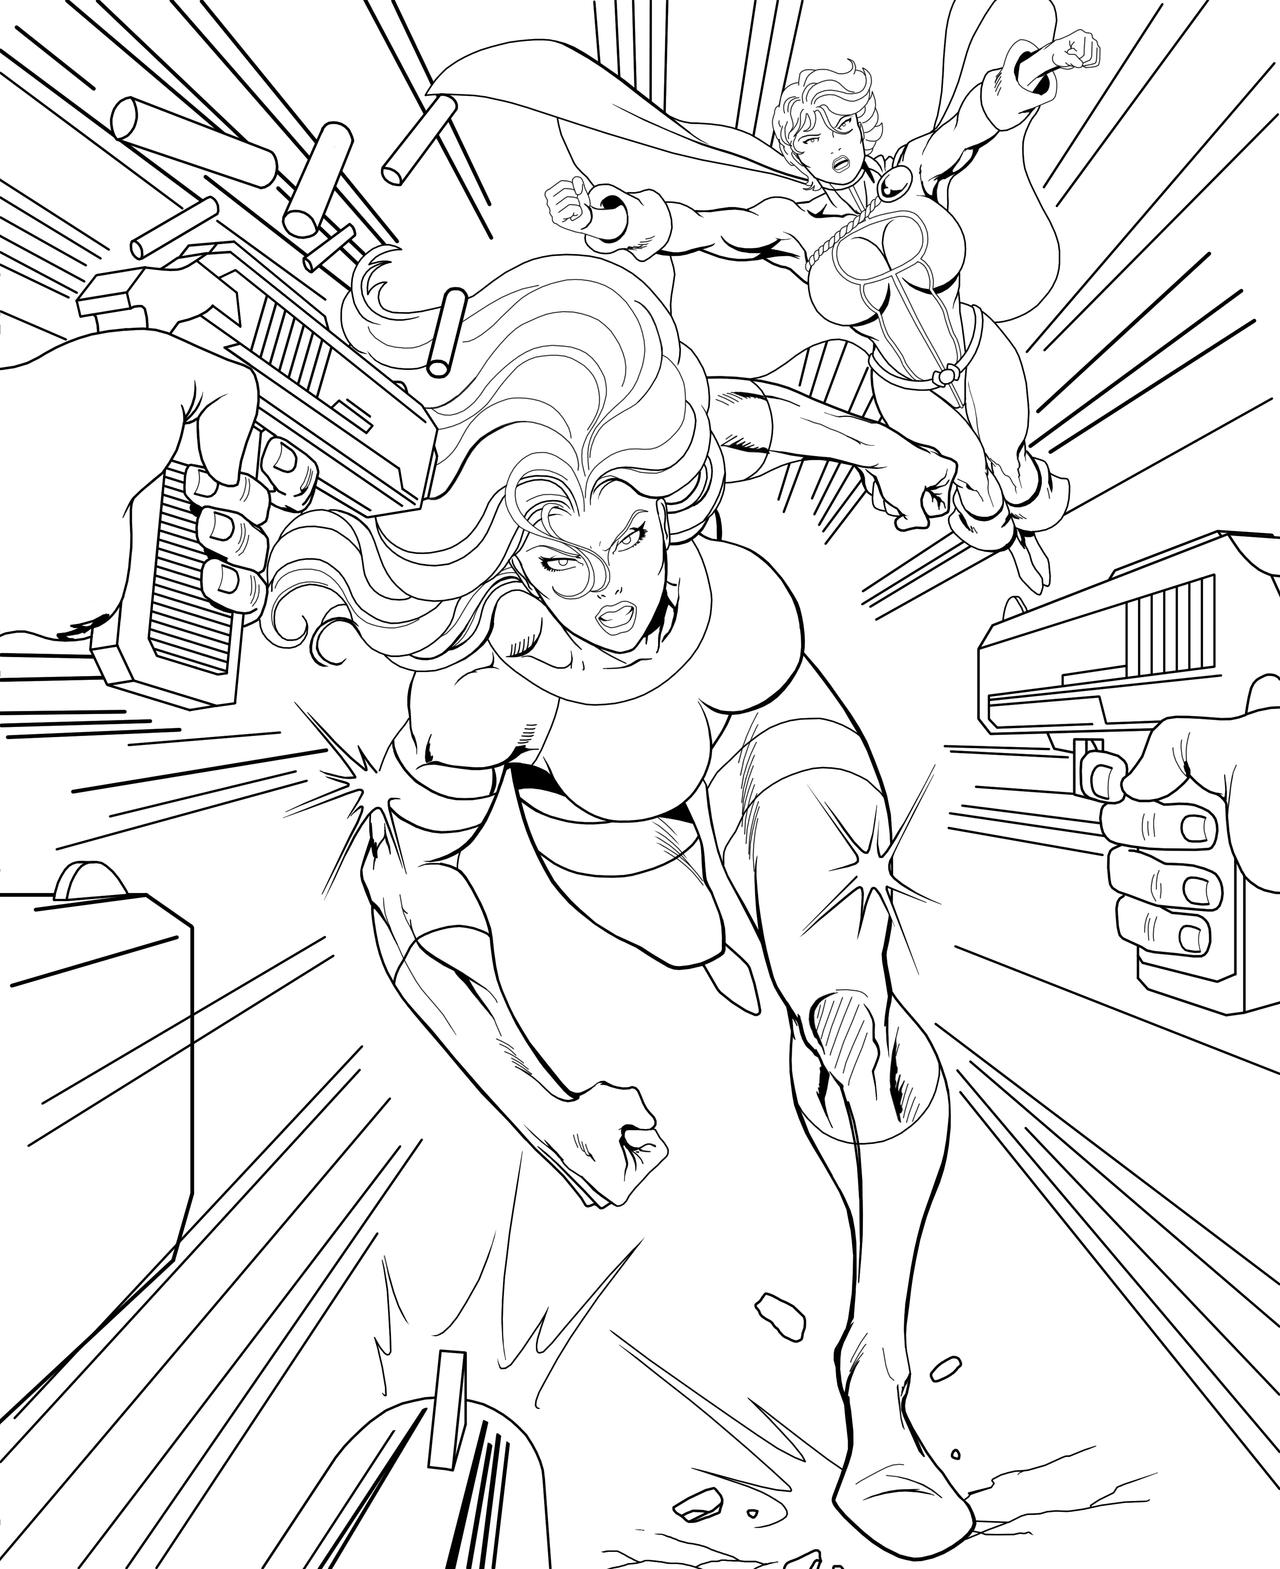 She hulk and power girl lineart by orionpax09 on deviantart for She hulk coloring pages